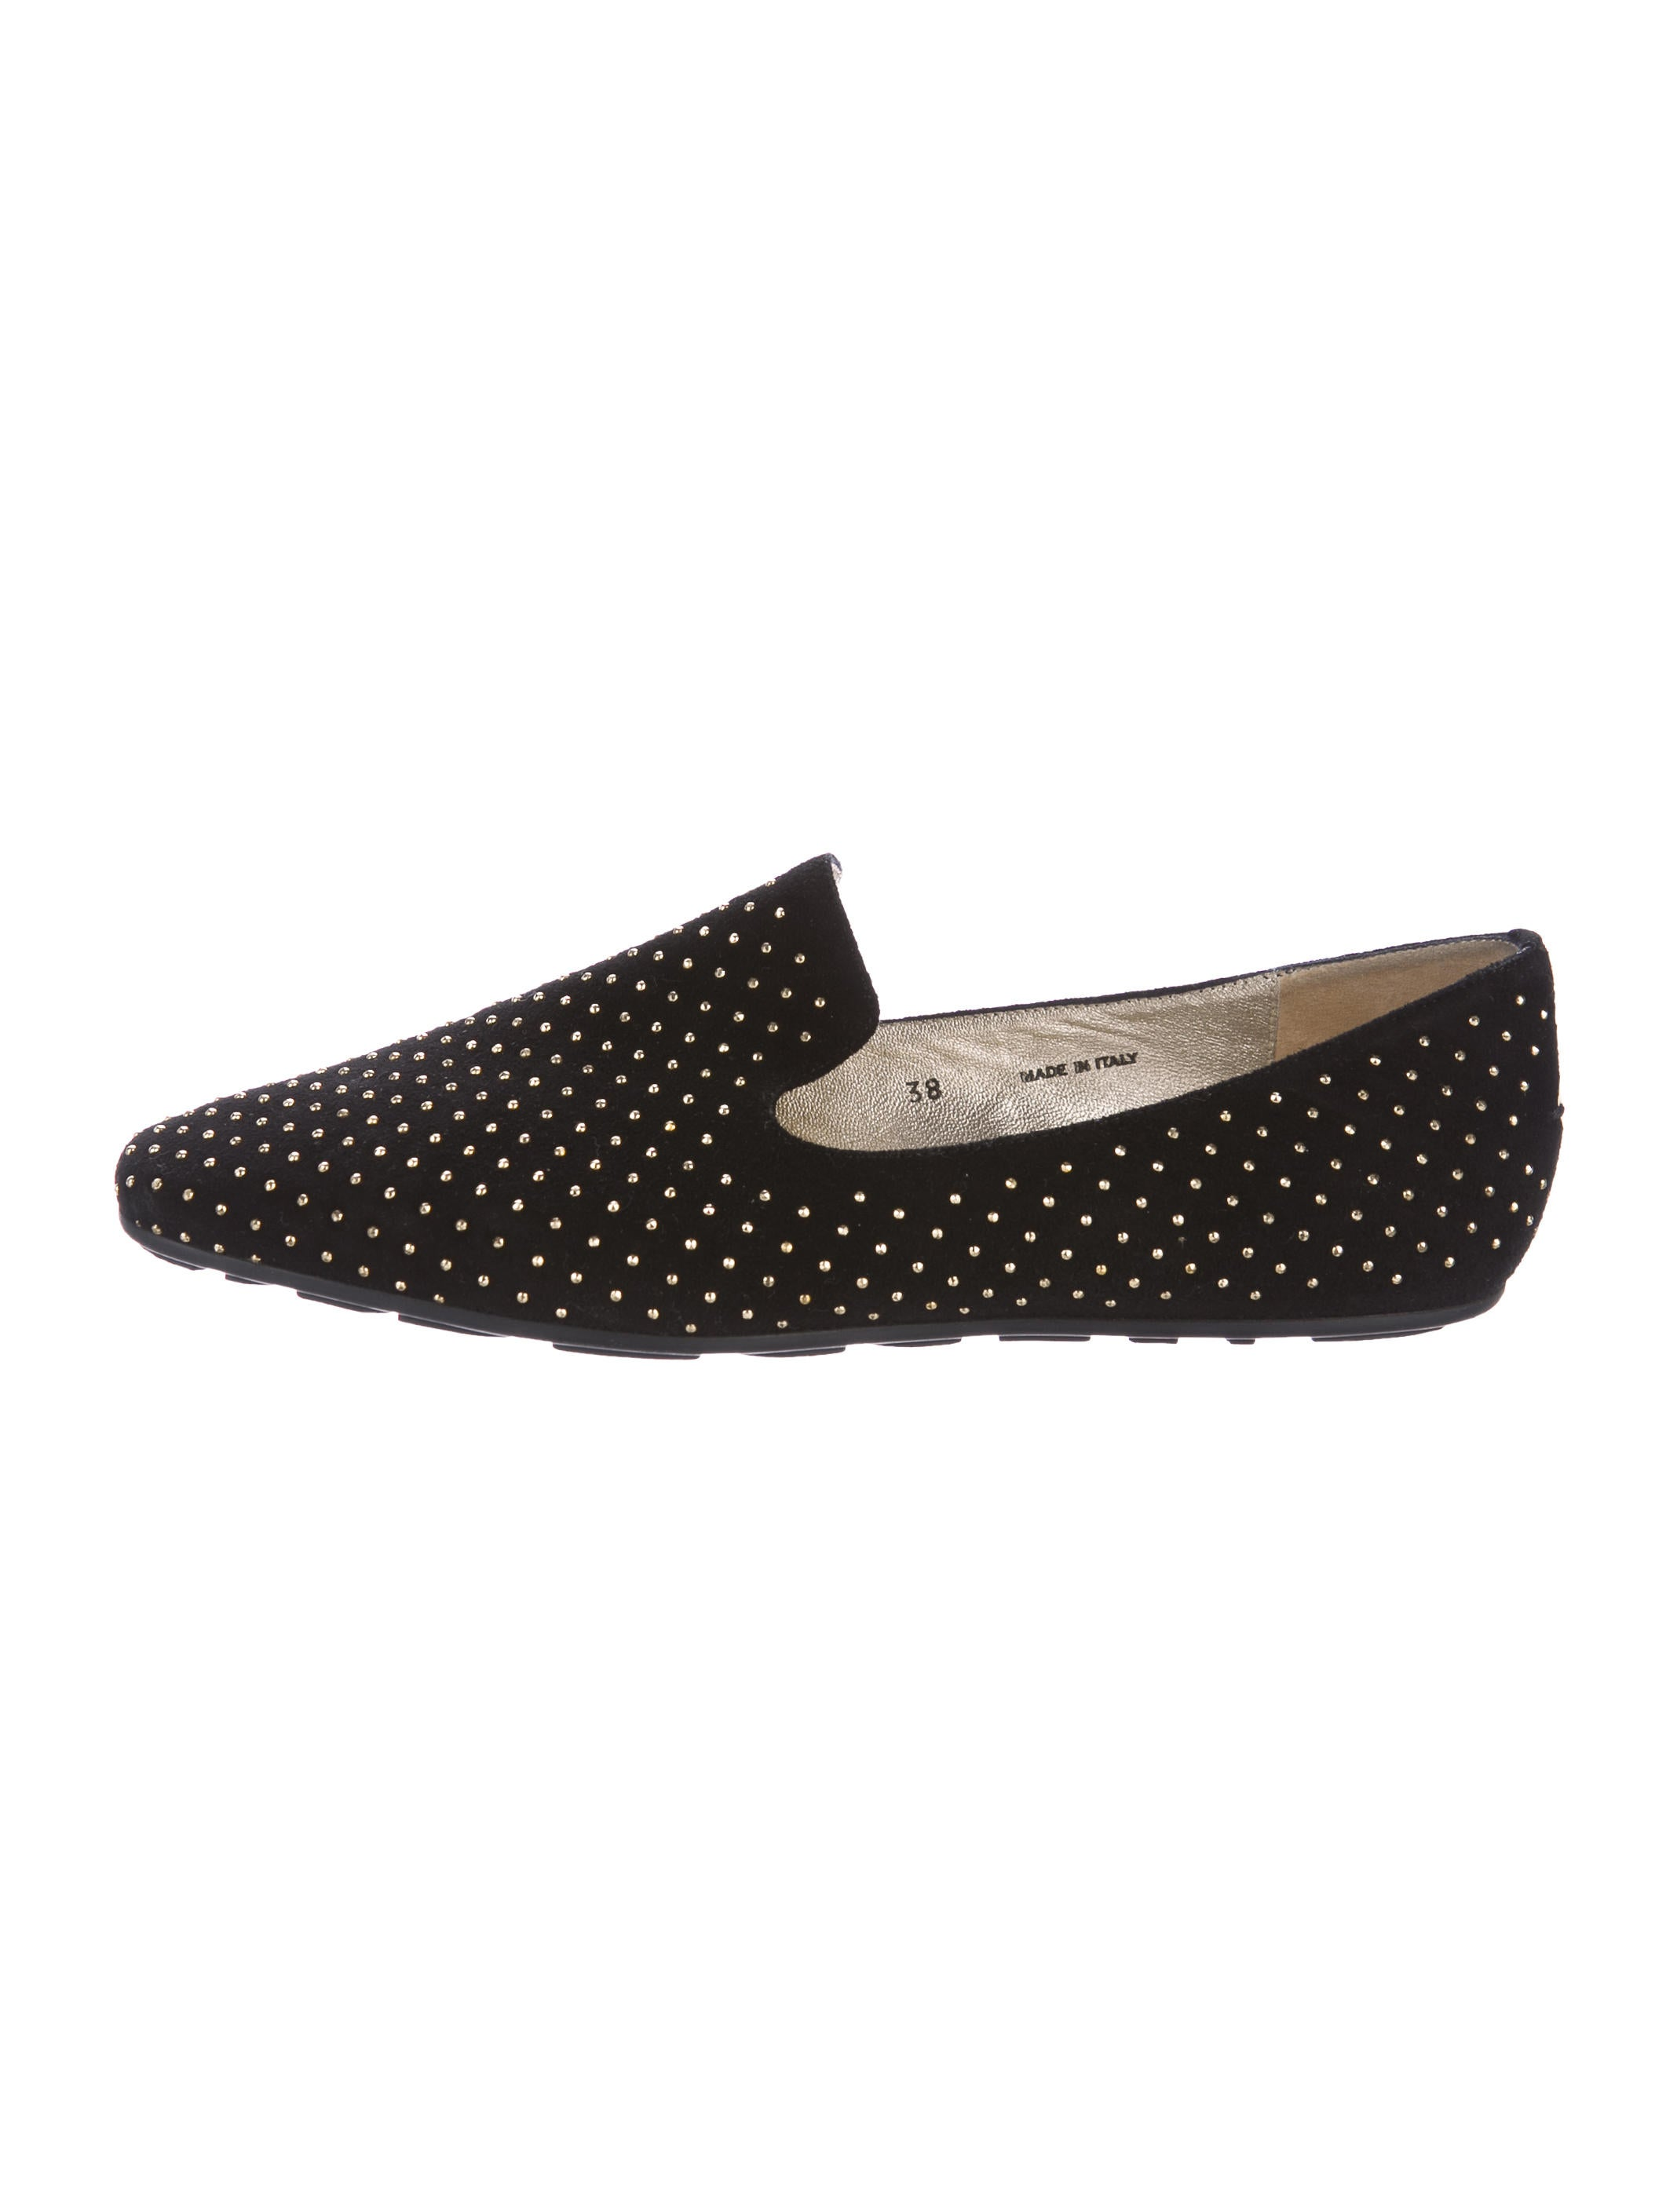 08110d8b39c Pictures of Loafers For Women Studded - kidskunst.info